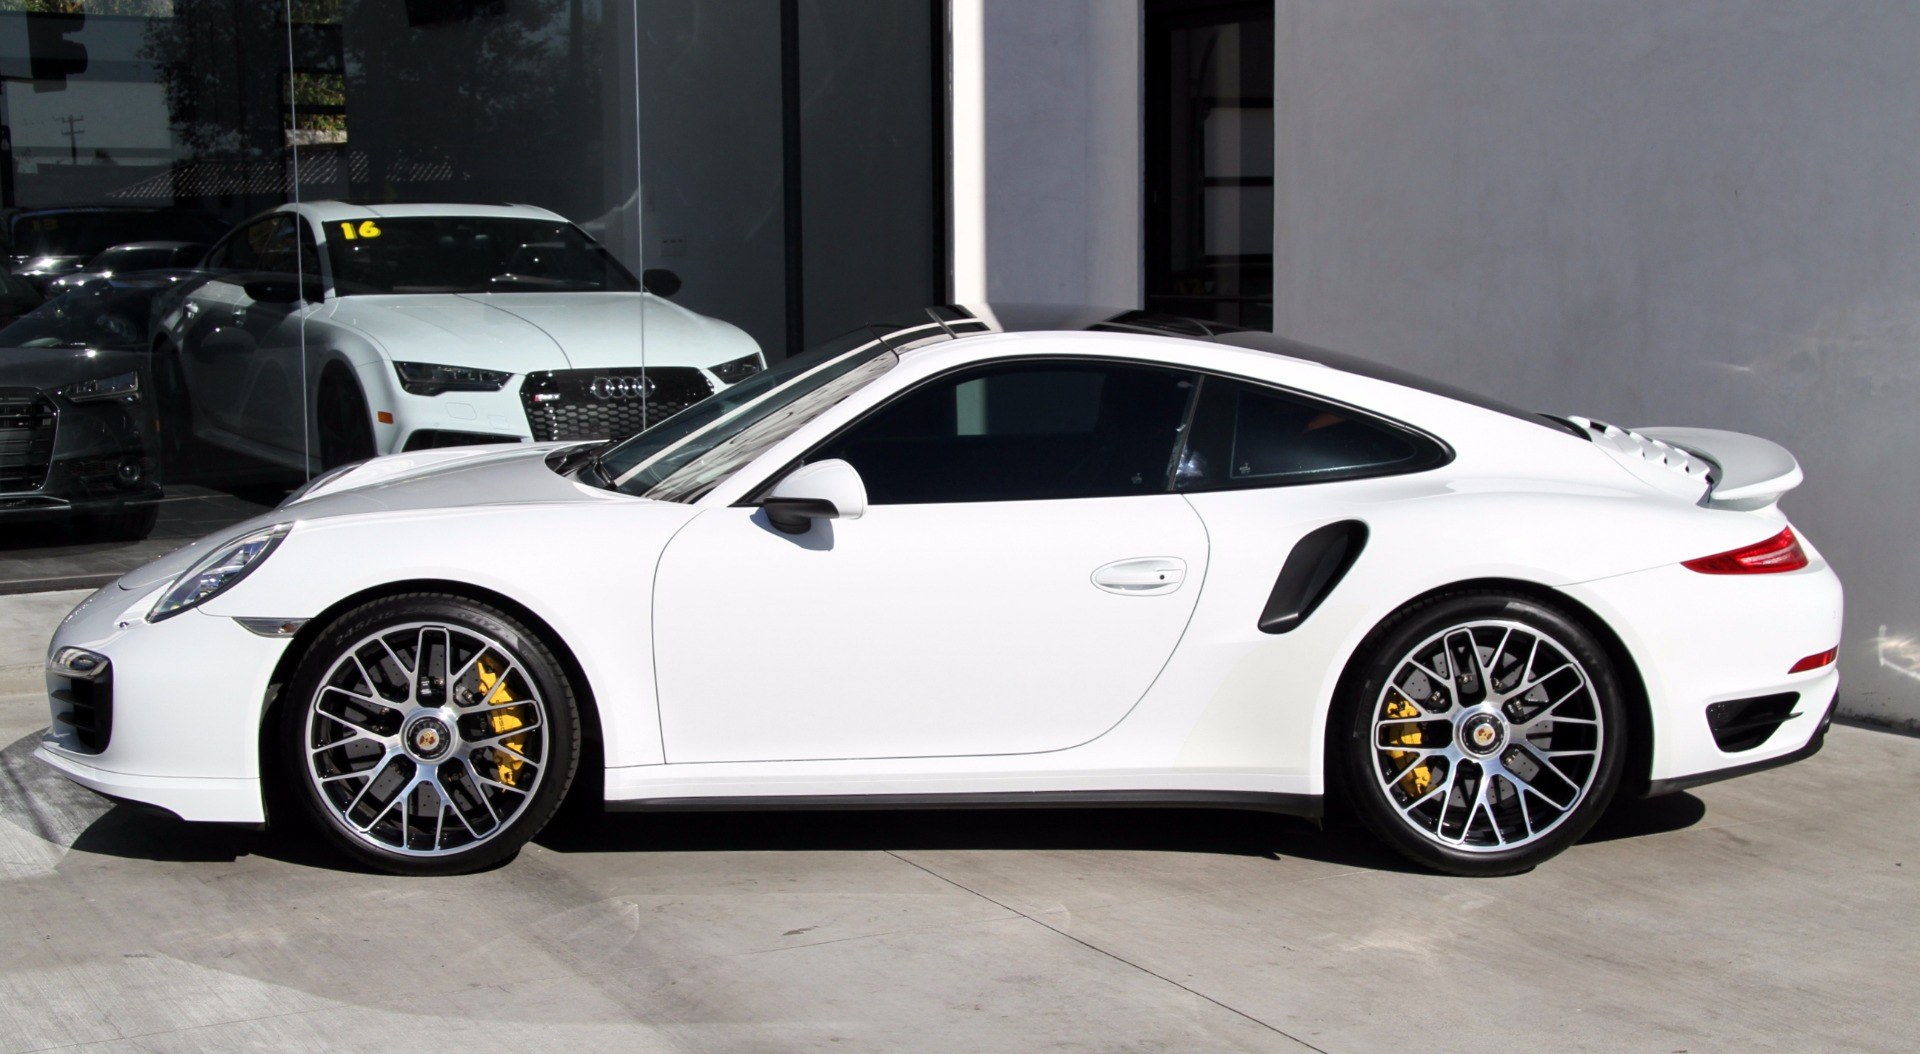 2014 porsche 911 turbo s stock 6044 for sale near redondo beach ca ca porsche dealer. Black Bedroom Furniture Sets. Home Design Ideas